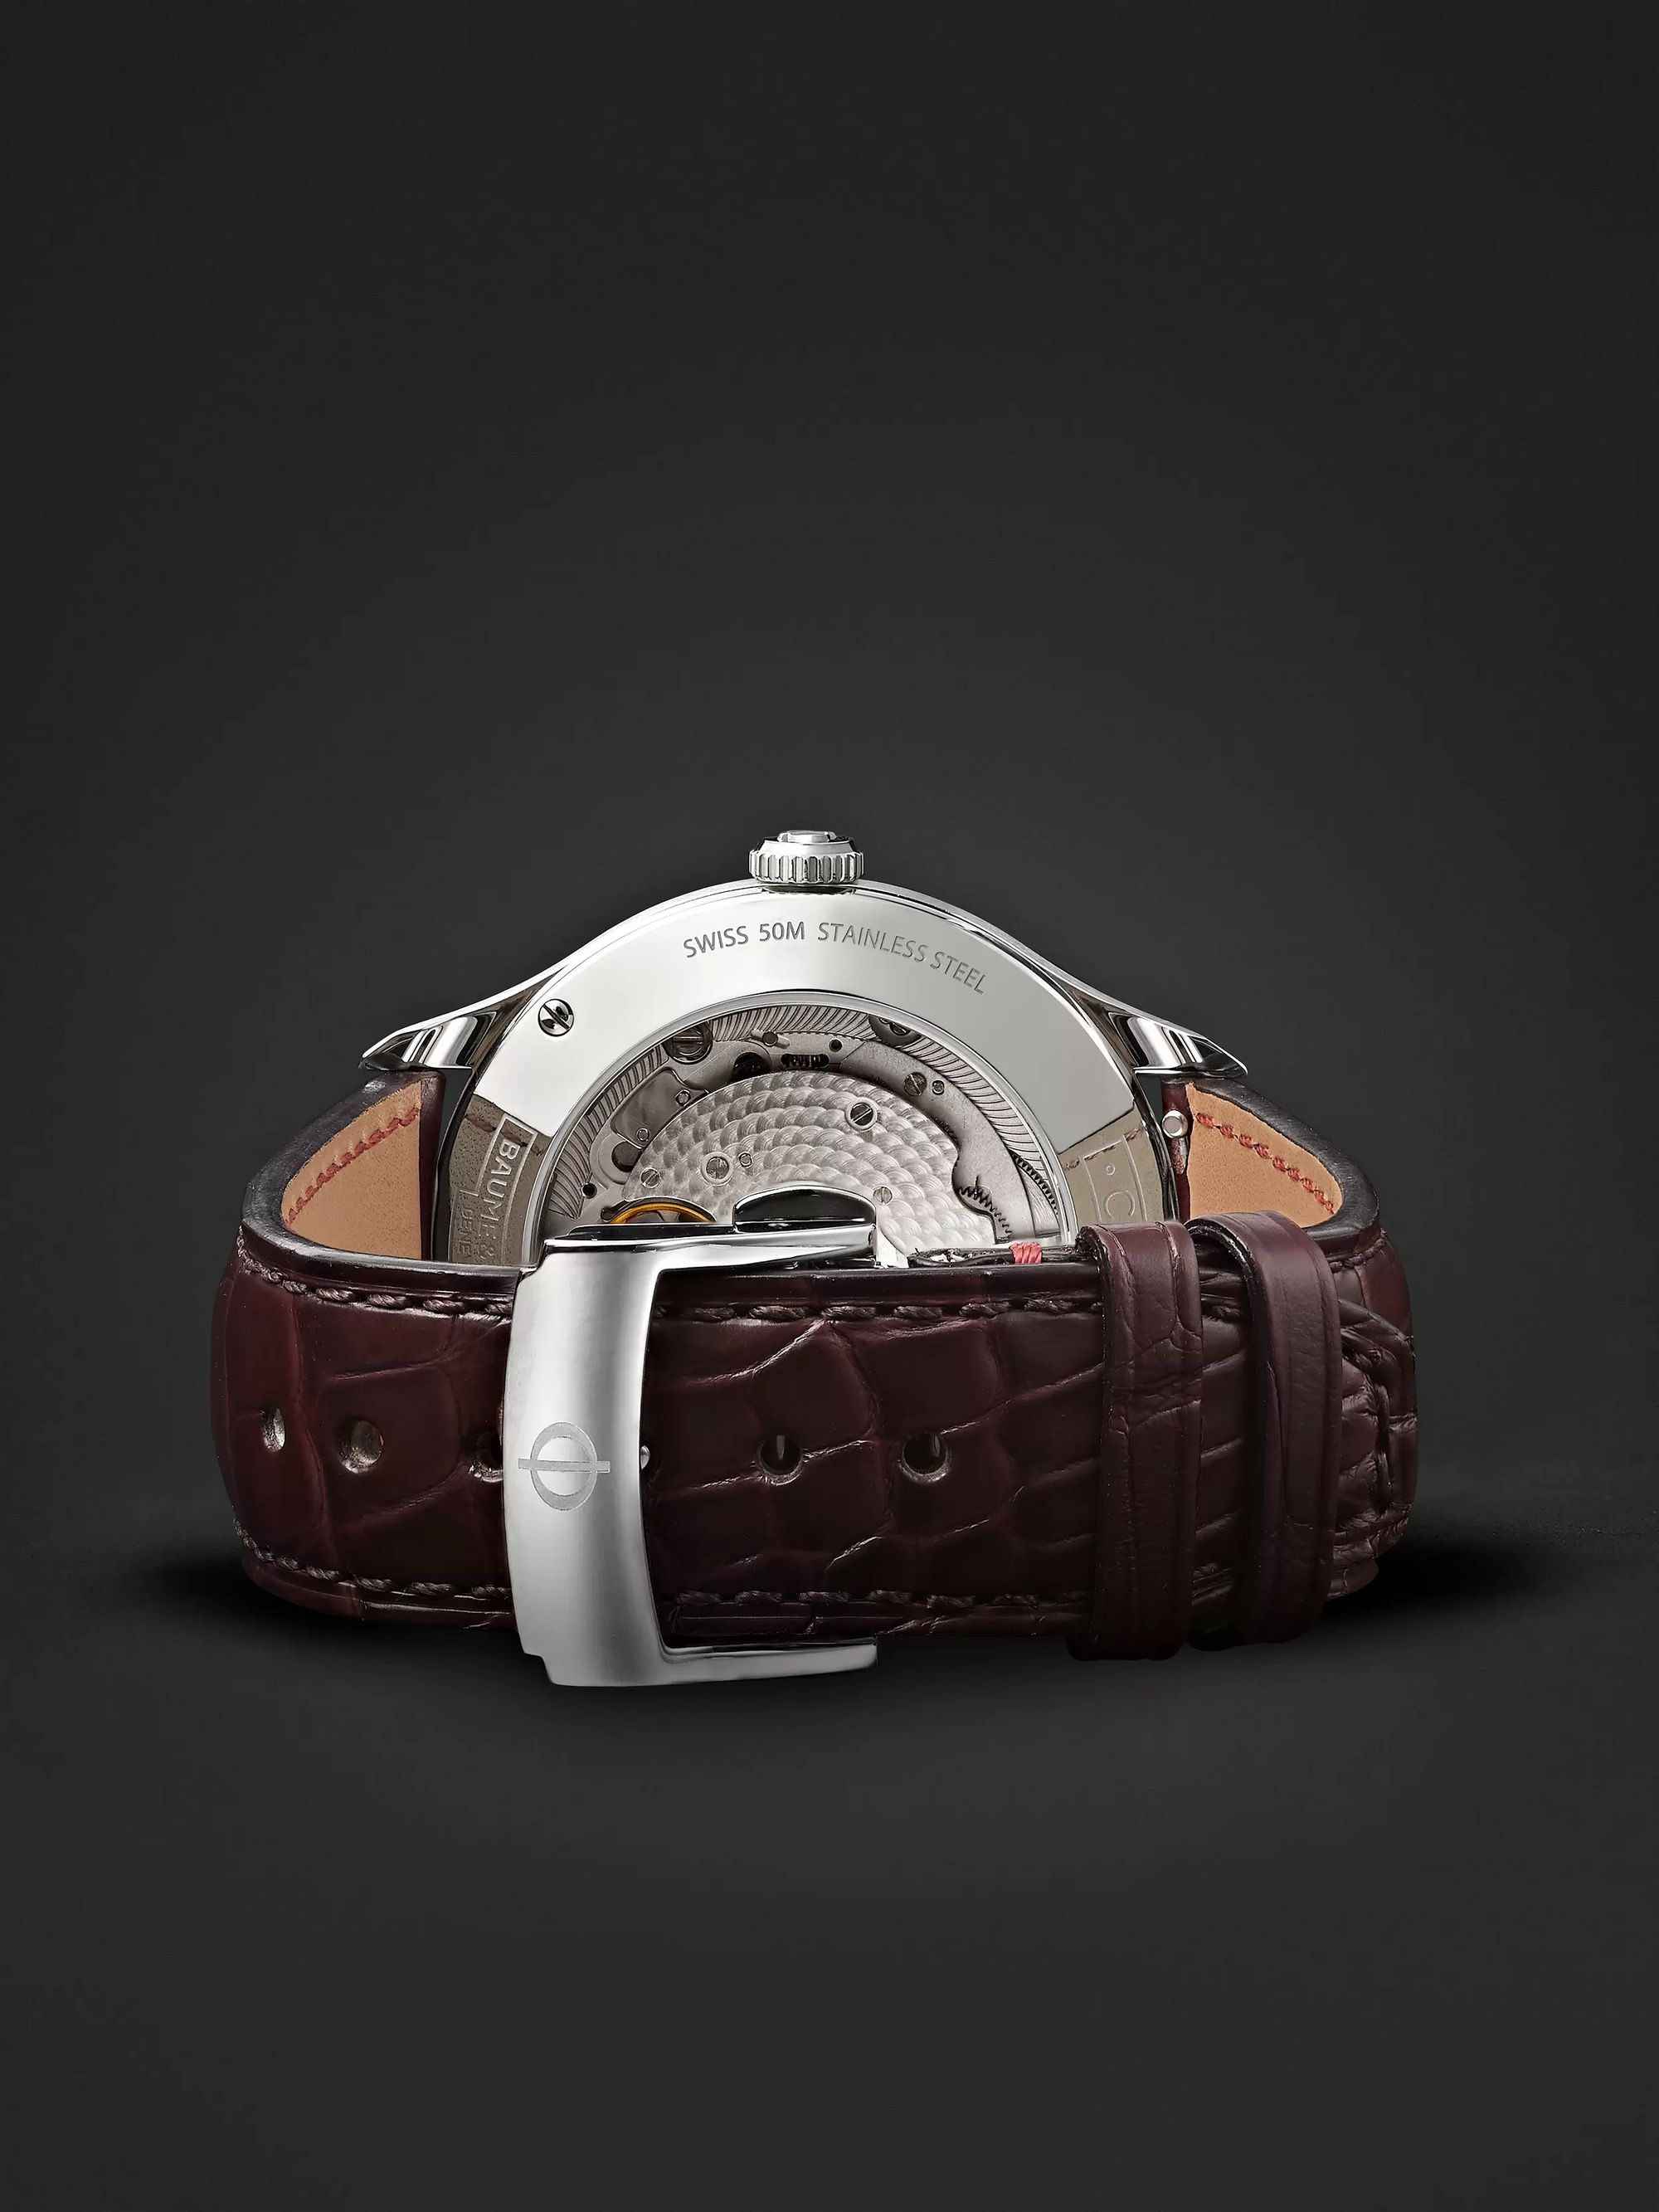 Baume & Mercier Clifton Baumatic Automatic Chronometer 40mm Stainless Steel and Alligator Watch, Ref. No. M0A10517